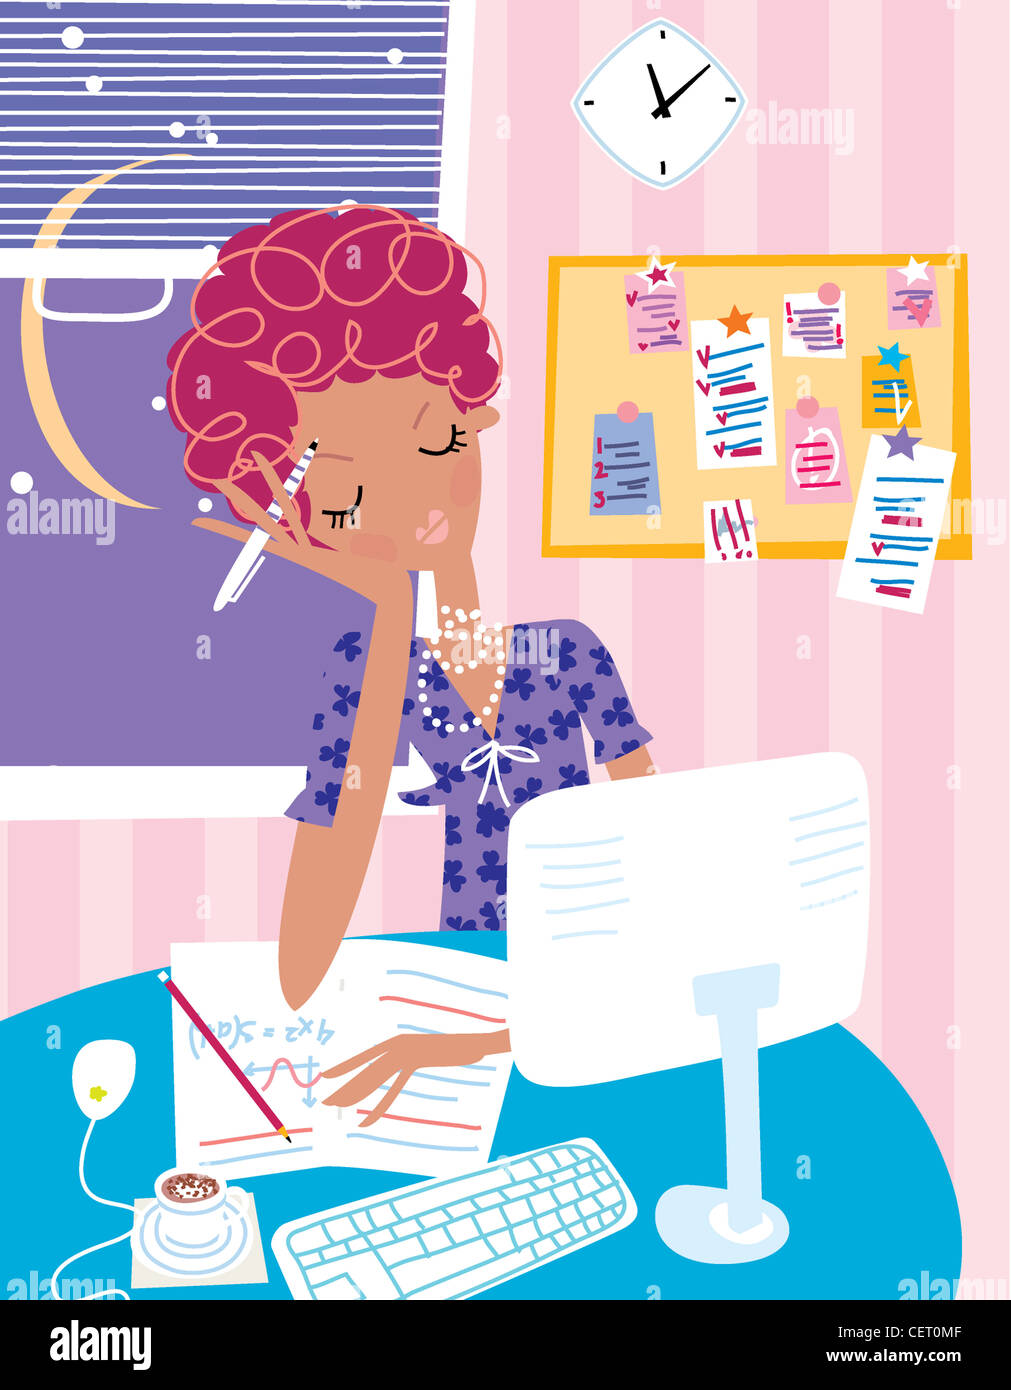 Female working late in an office - Stock Image